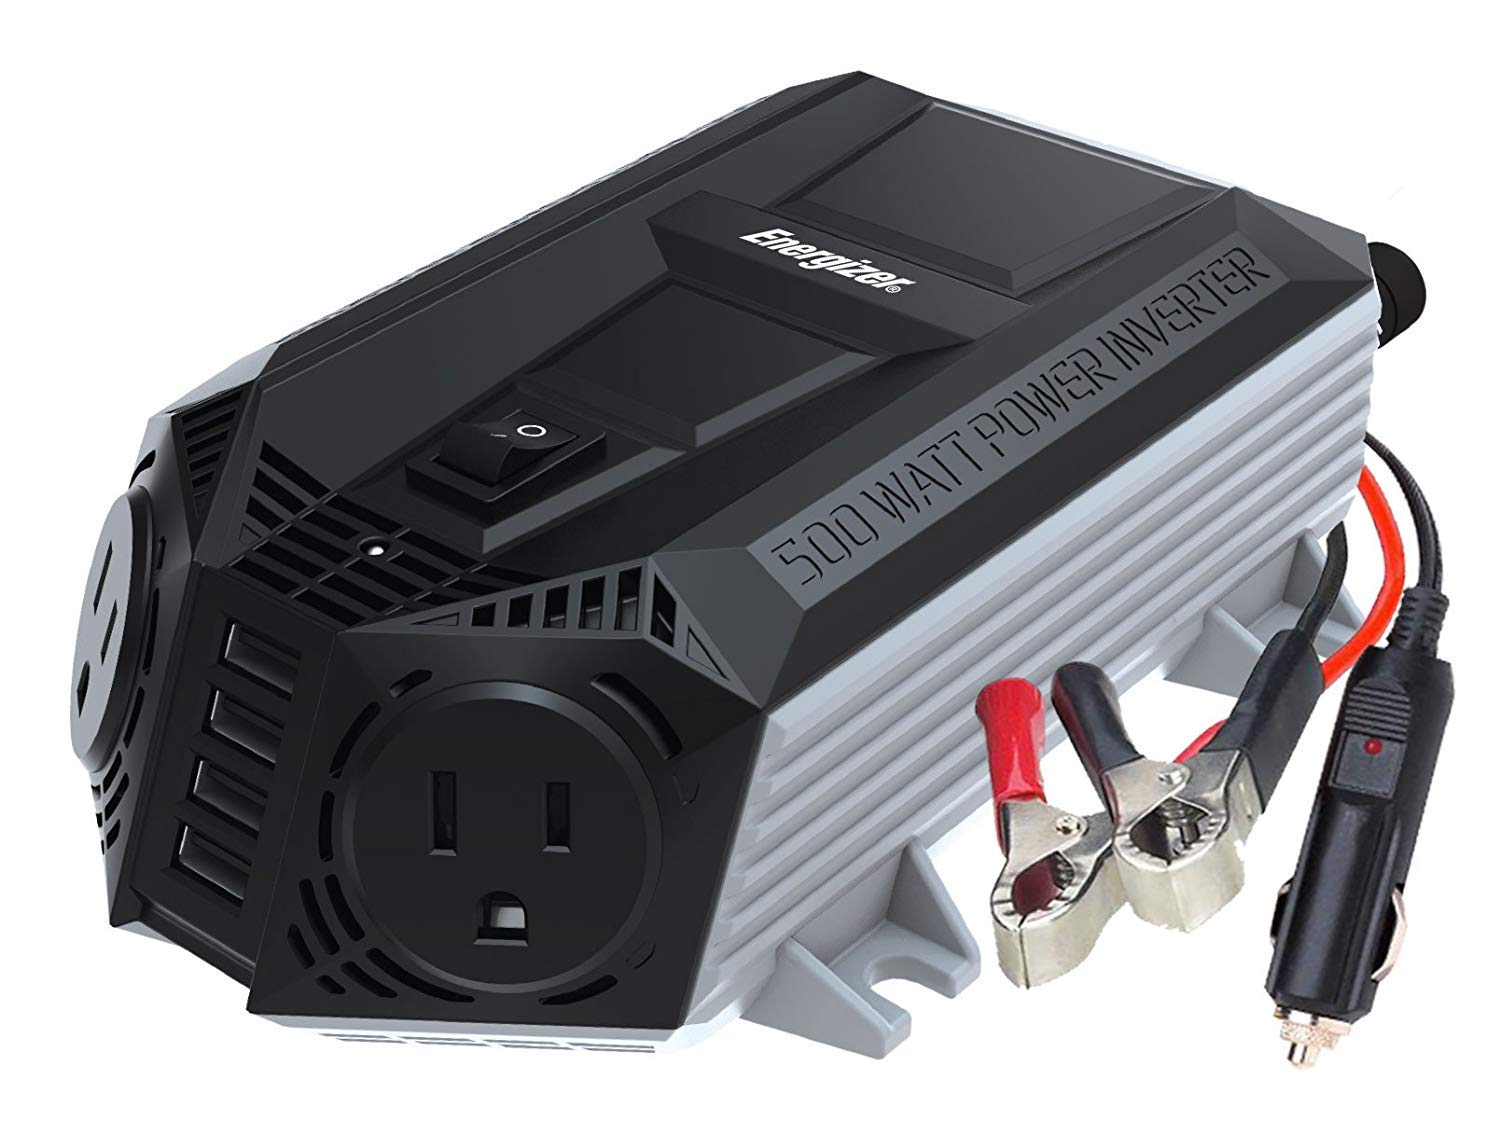 ENERGIZER 500 Watt Power Inverter 12V DC to AC + 4 x 2.4A USB Charging Ports Total 9.6A